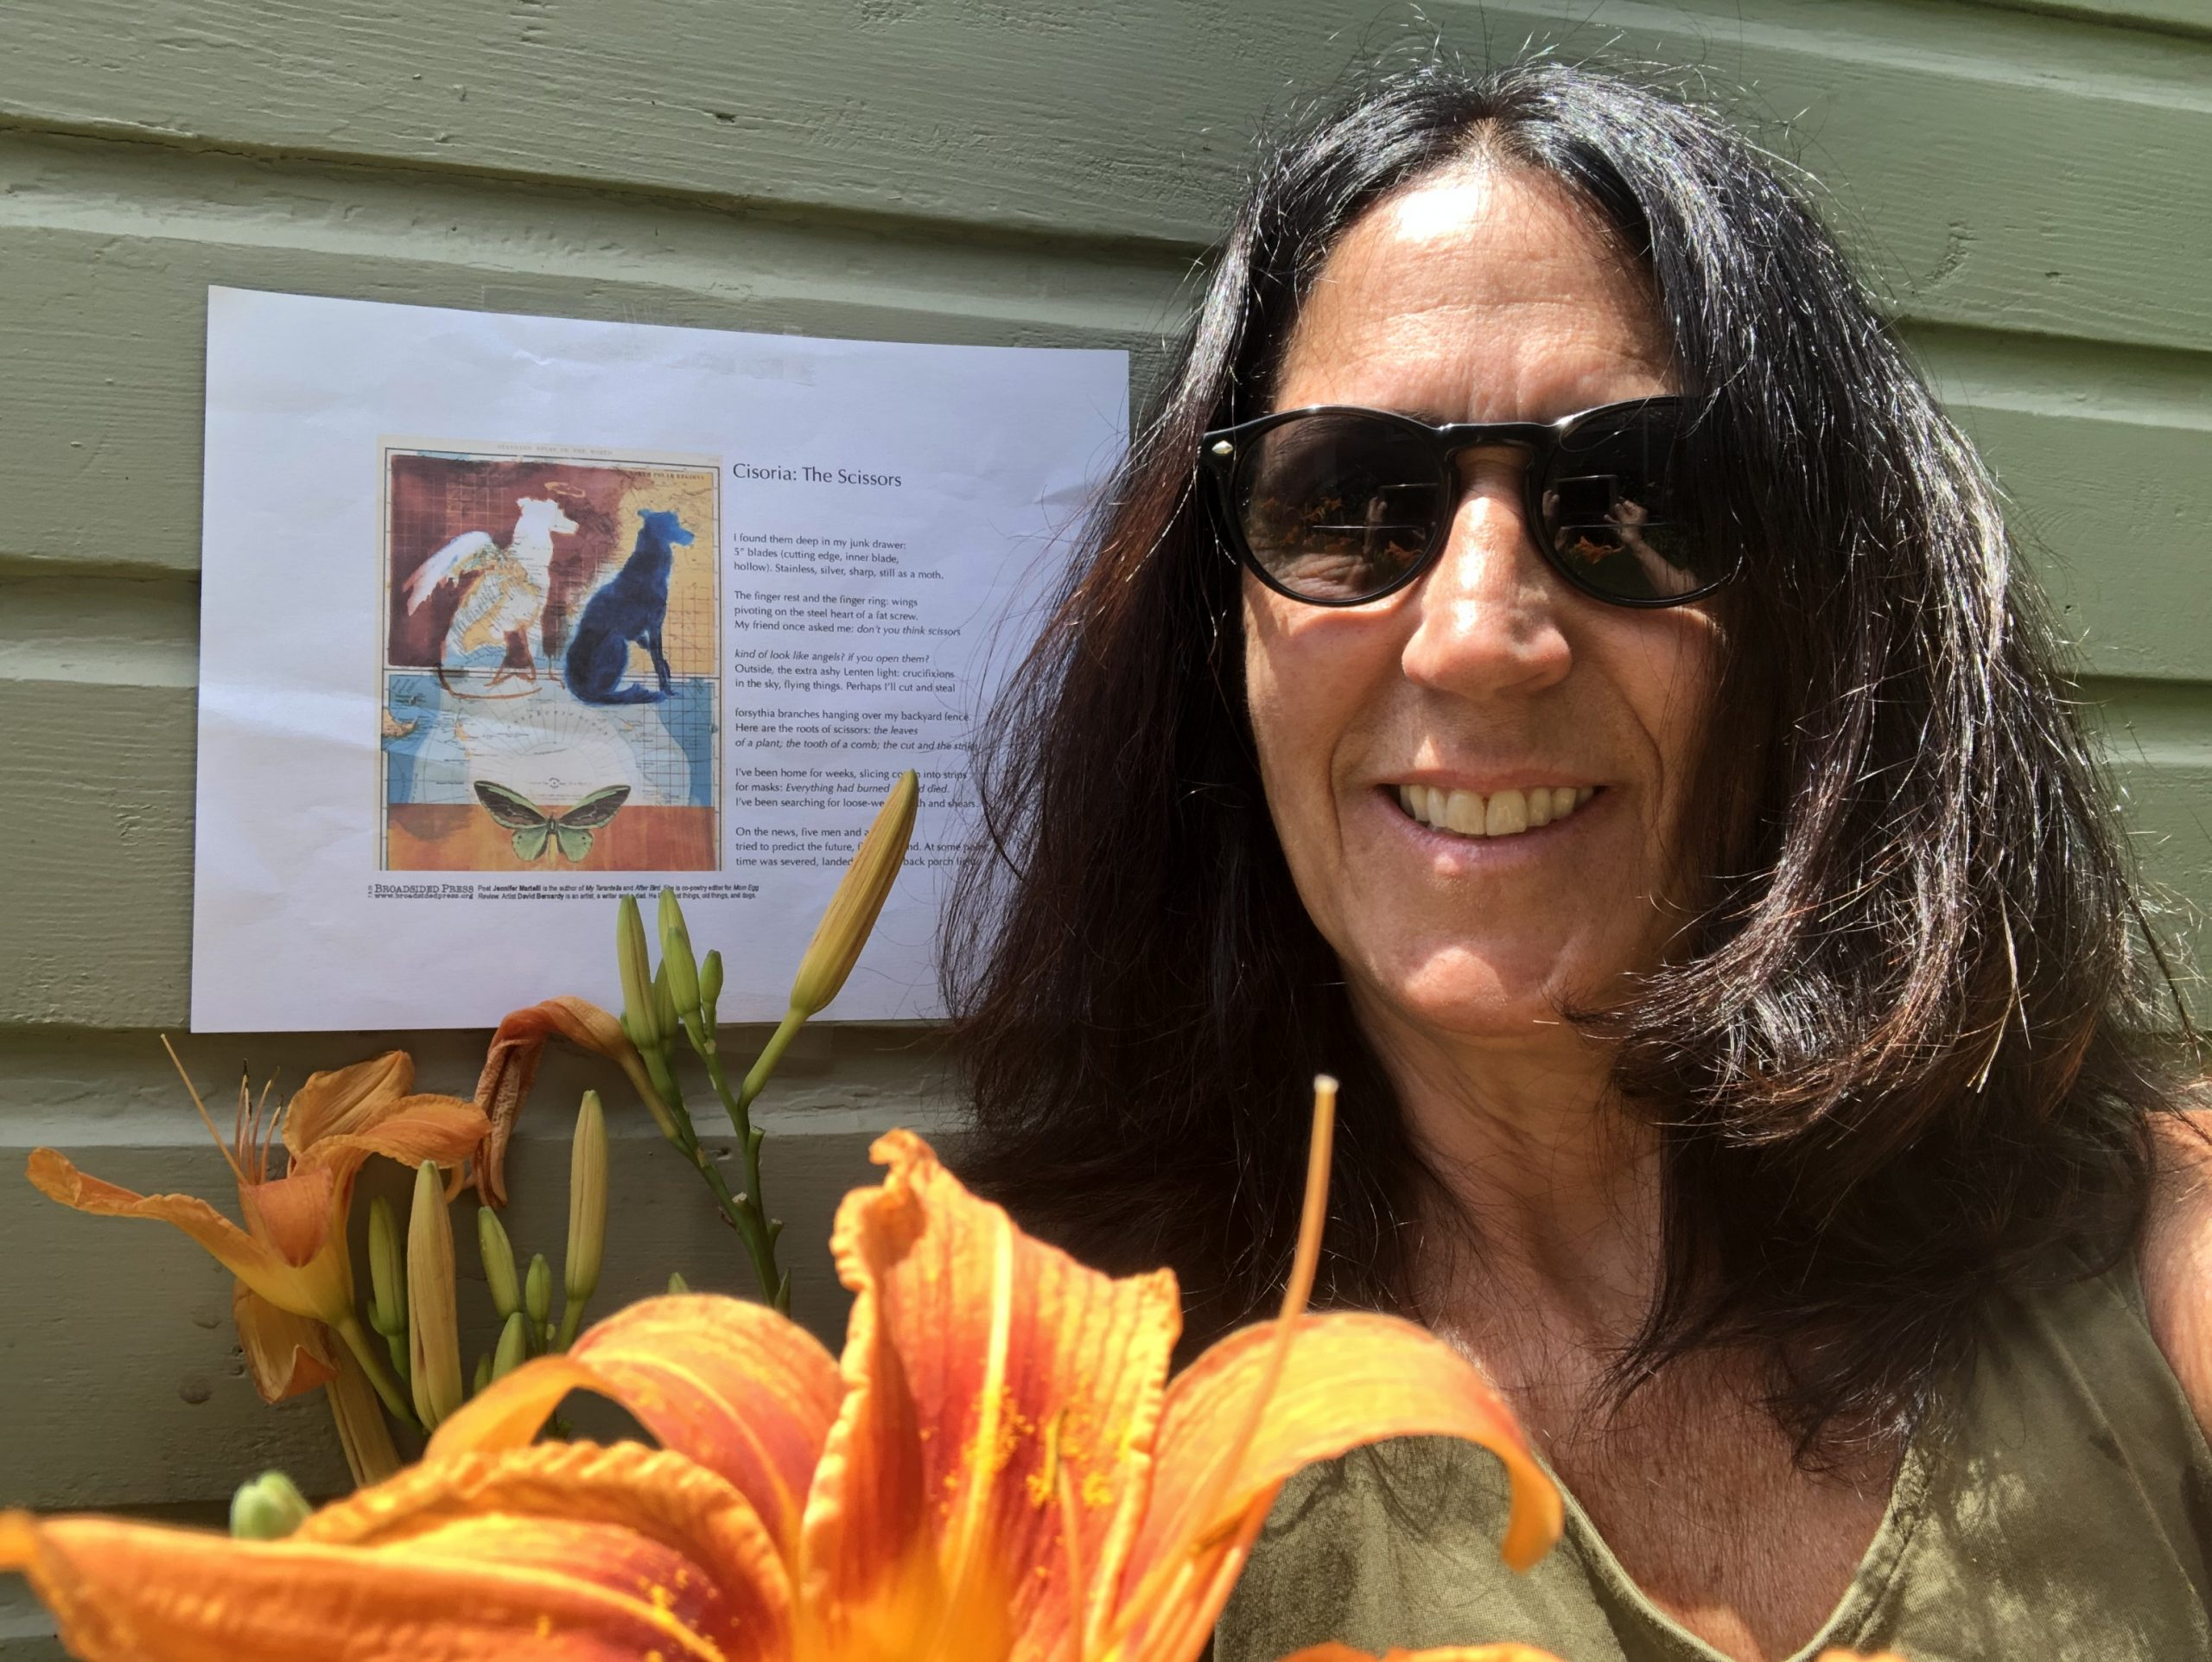 Close up of smiling poet in front of Broadside with flowers in bottom edges of picture.